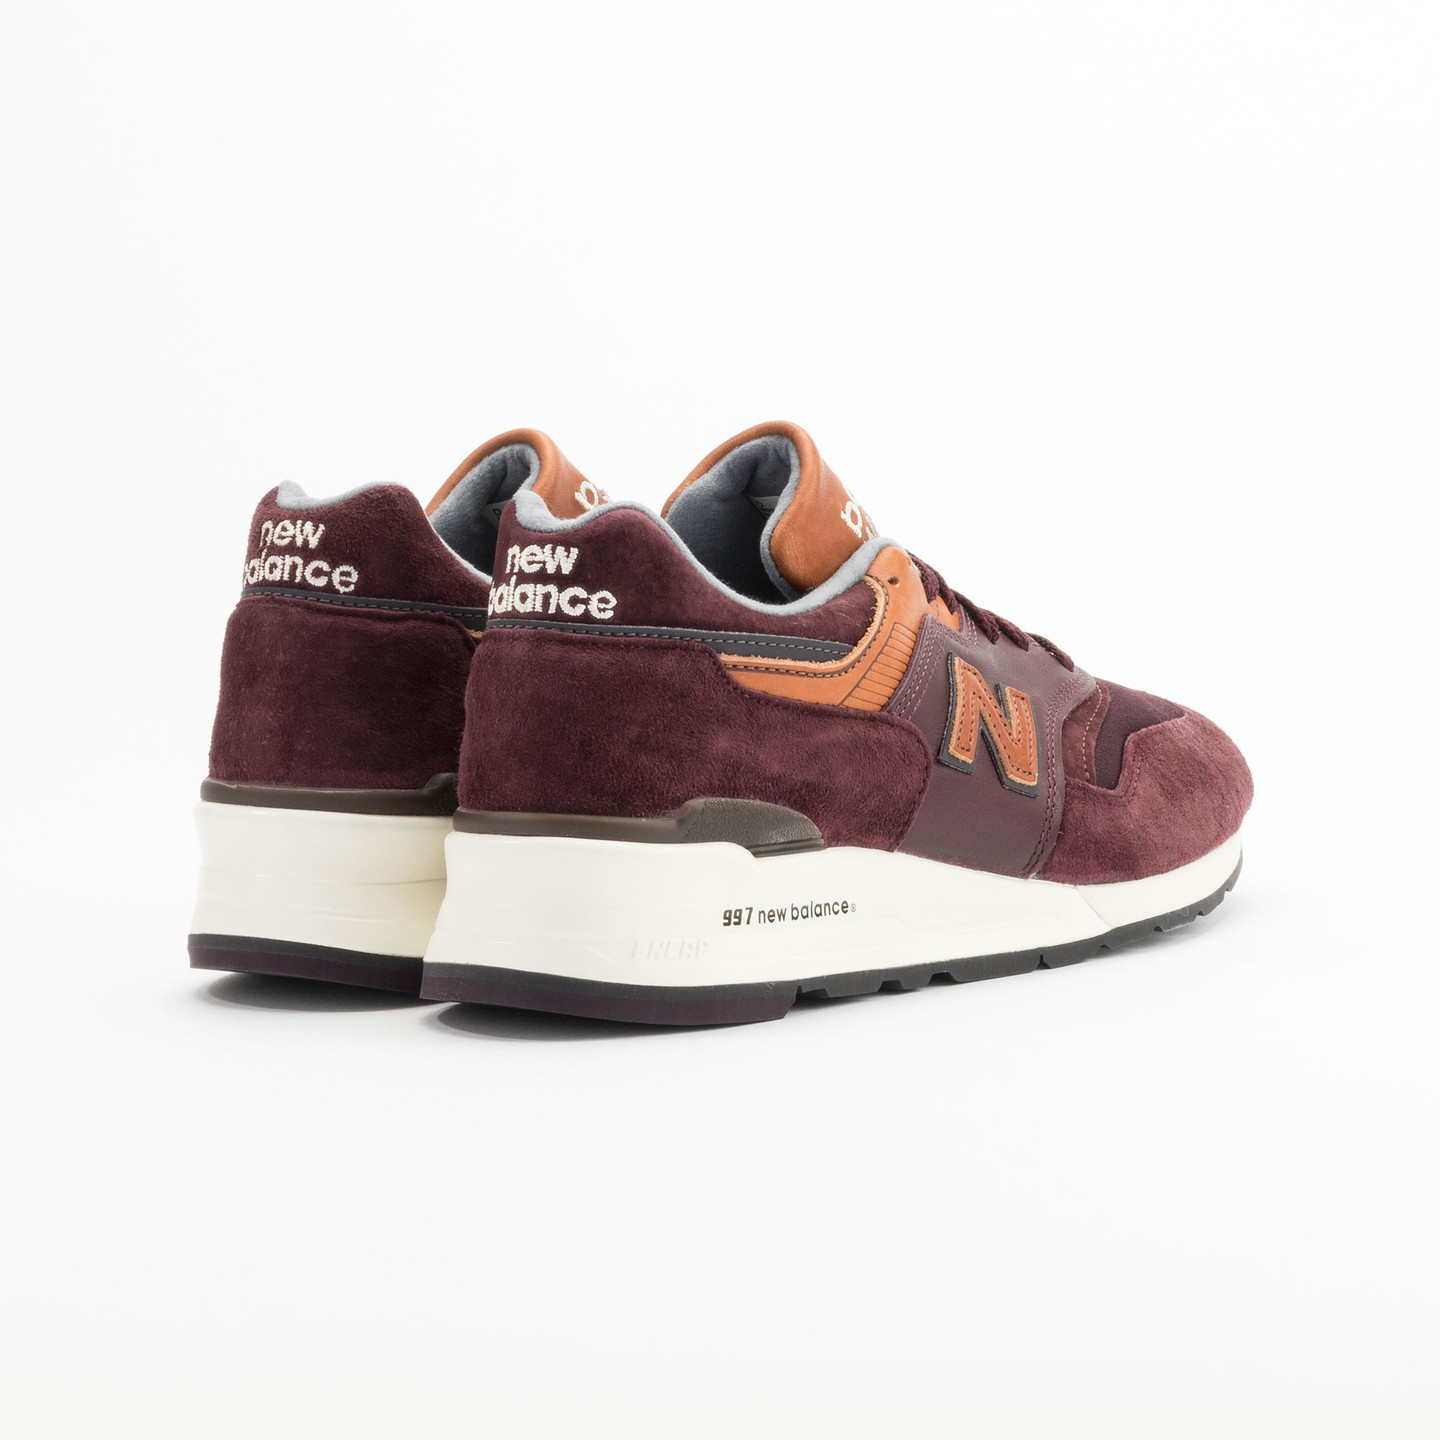 New Balance M997 Made in USA Burgundy / Light Brown M997DSLR-45